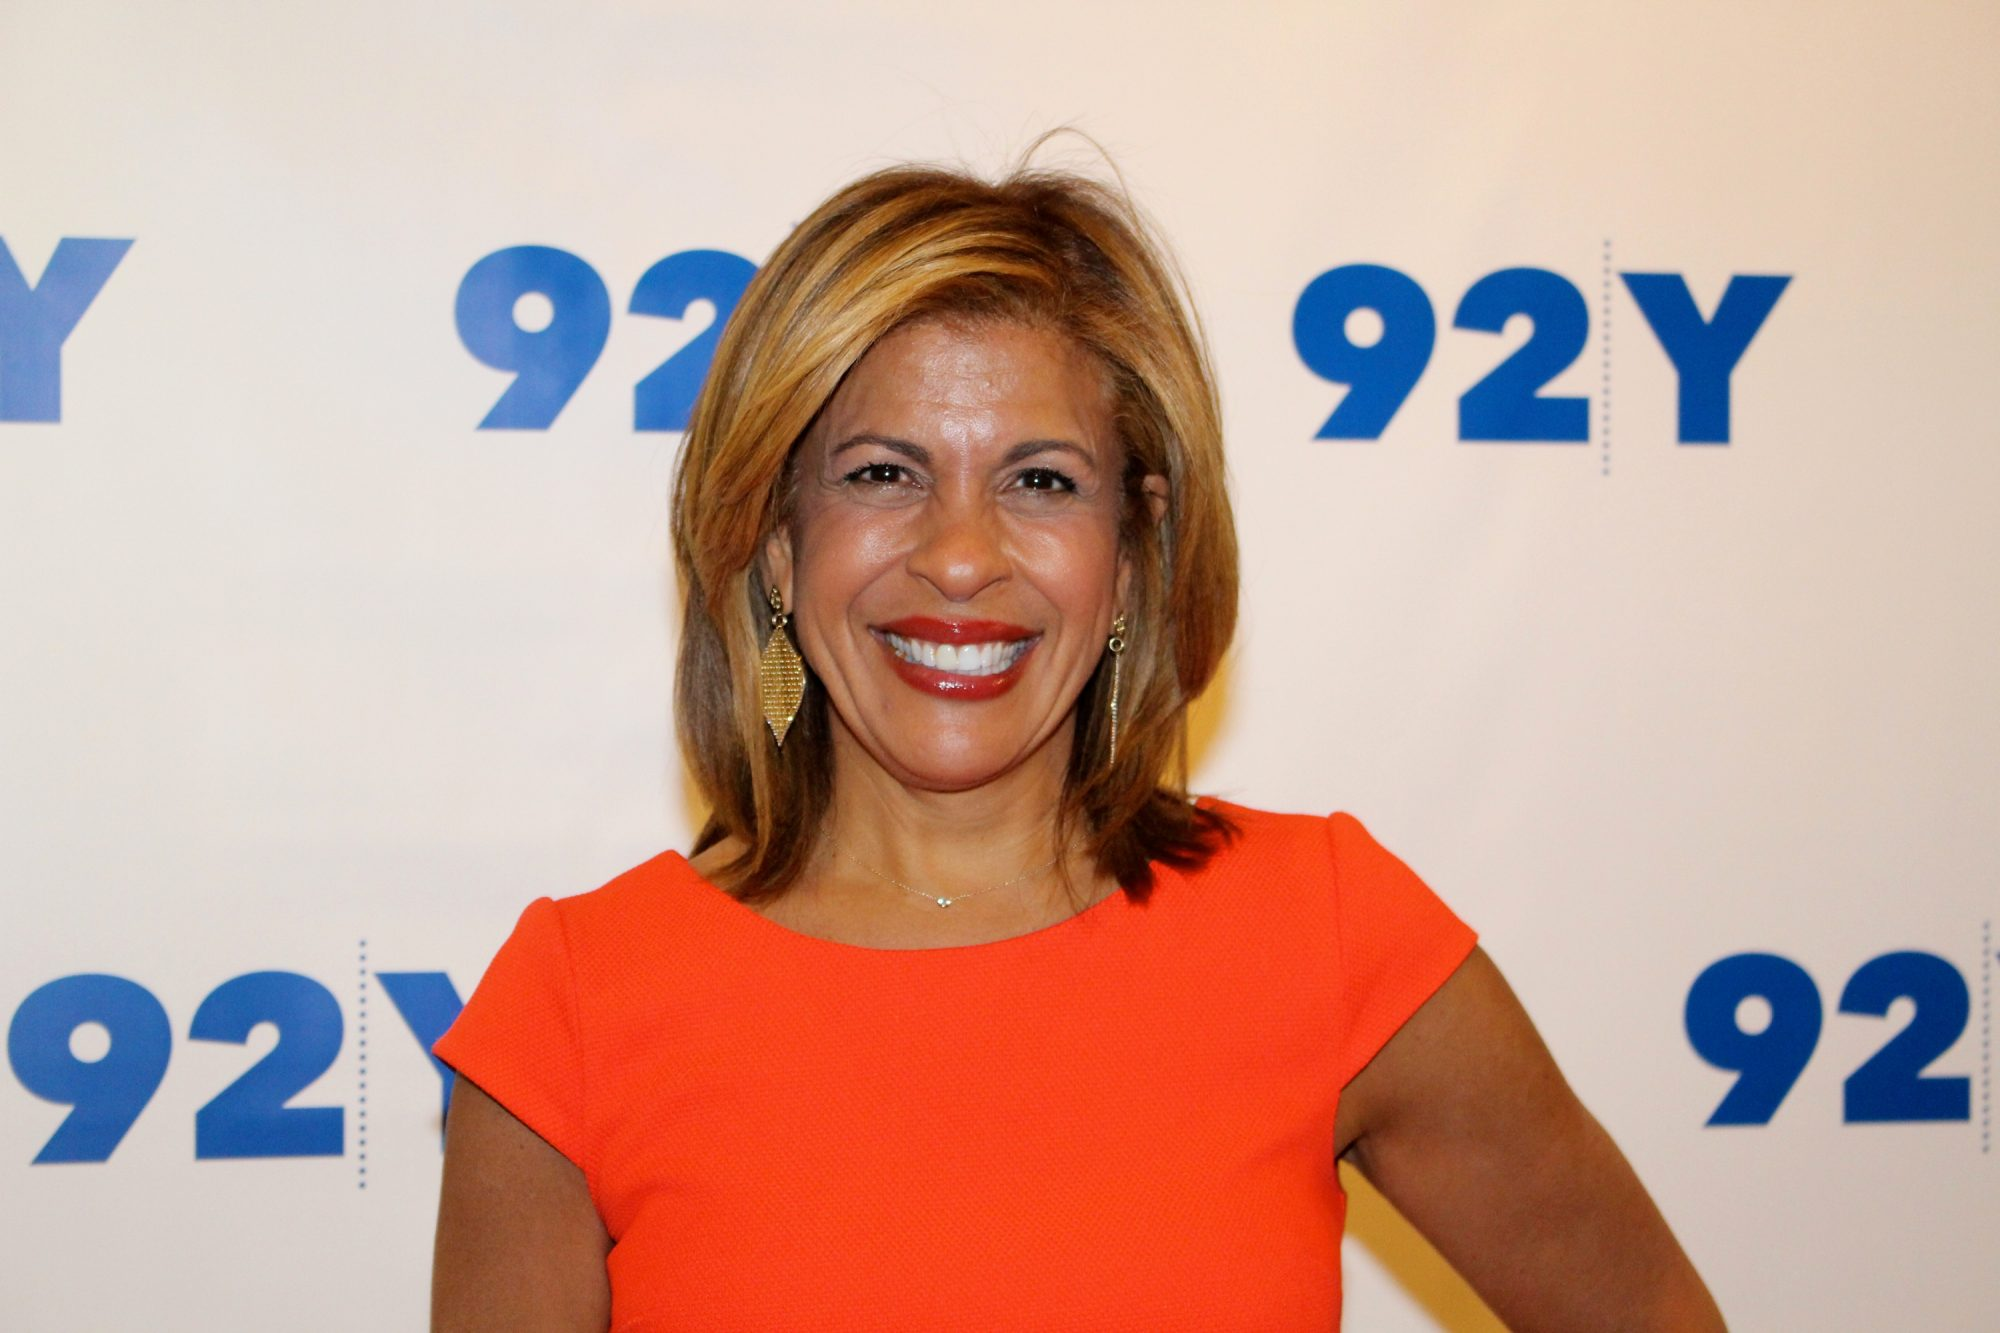 Hoda Kotb in an Orange Dress